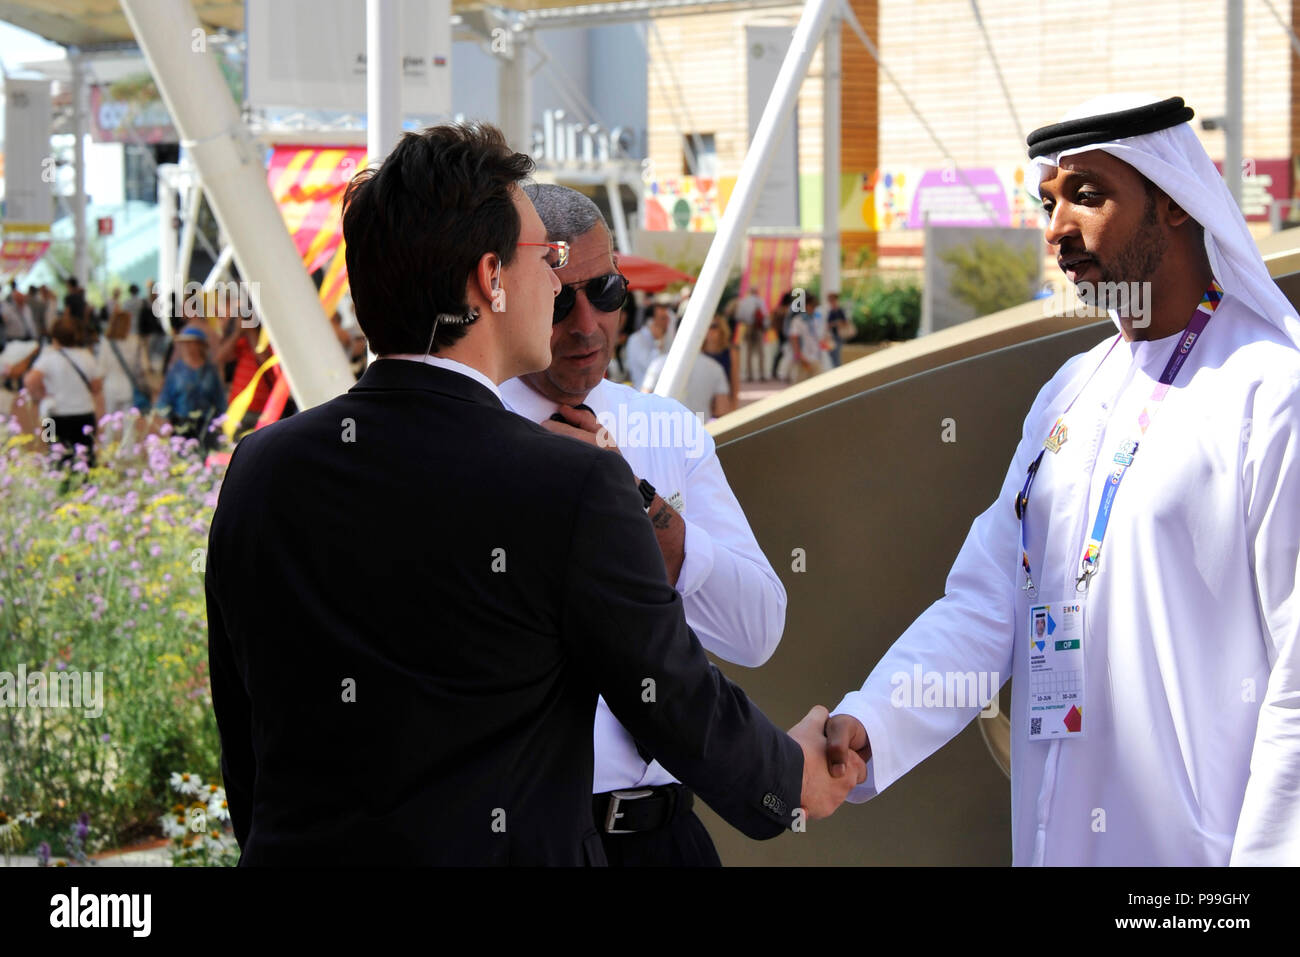 Milan, Italy – July 30 2015: An Arab man and a western man shake hands as a sign of peace. the concept of peace in the world or a concluded world affa - Stock Image